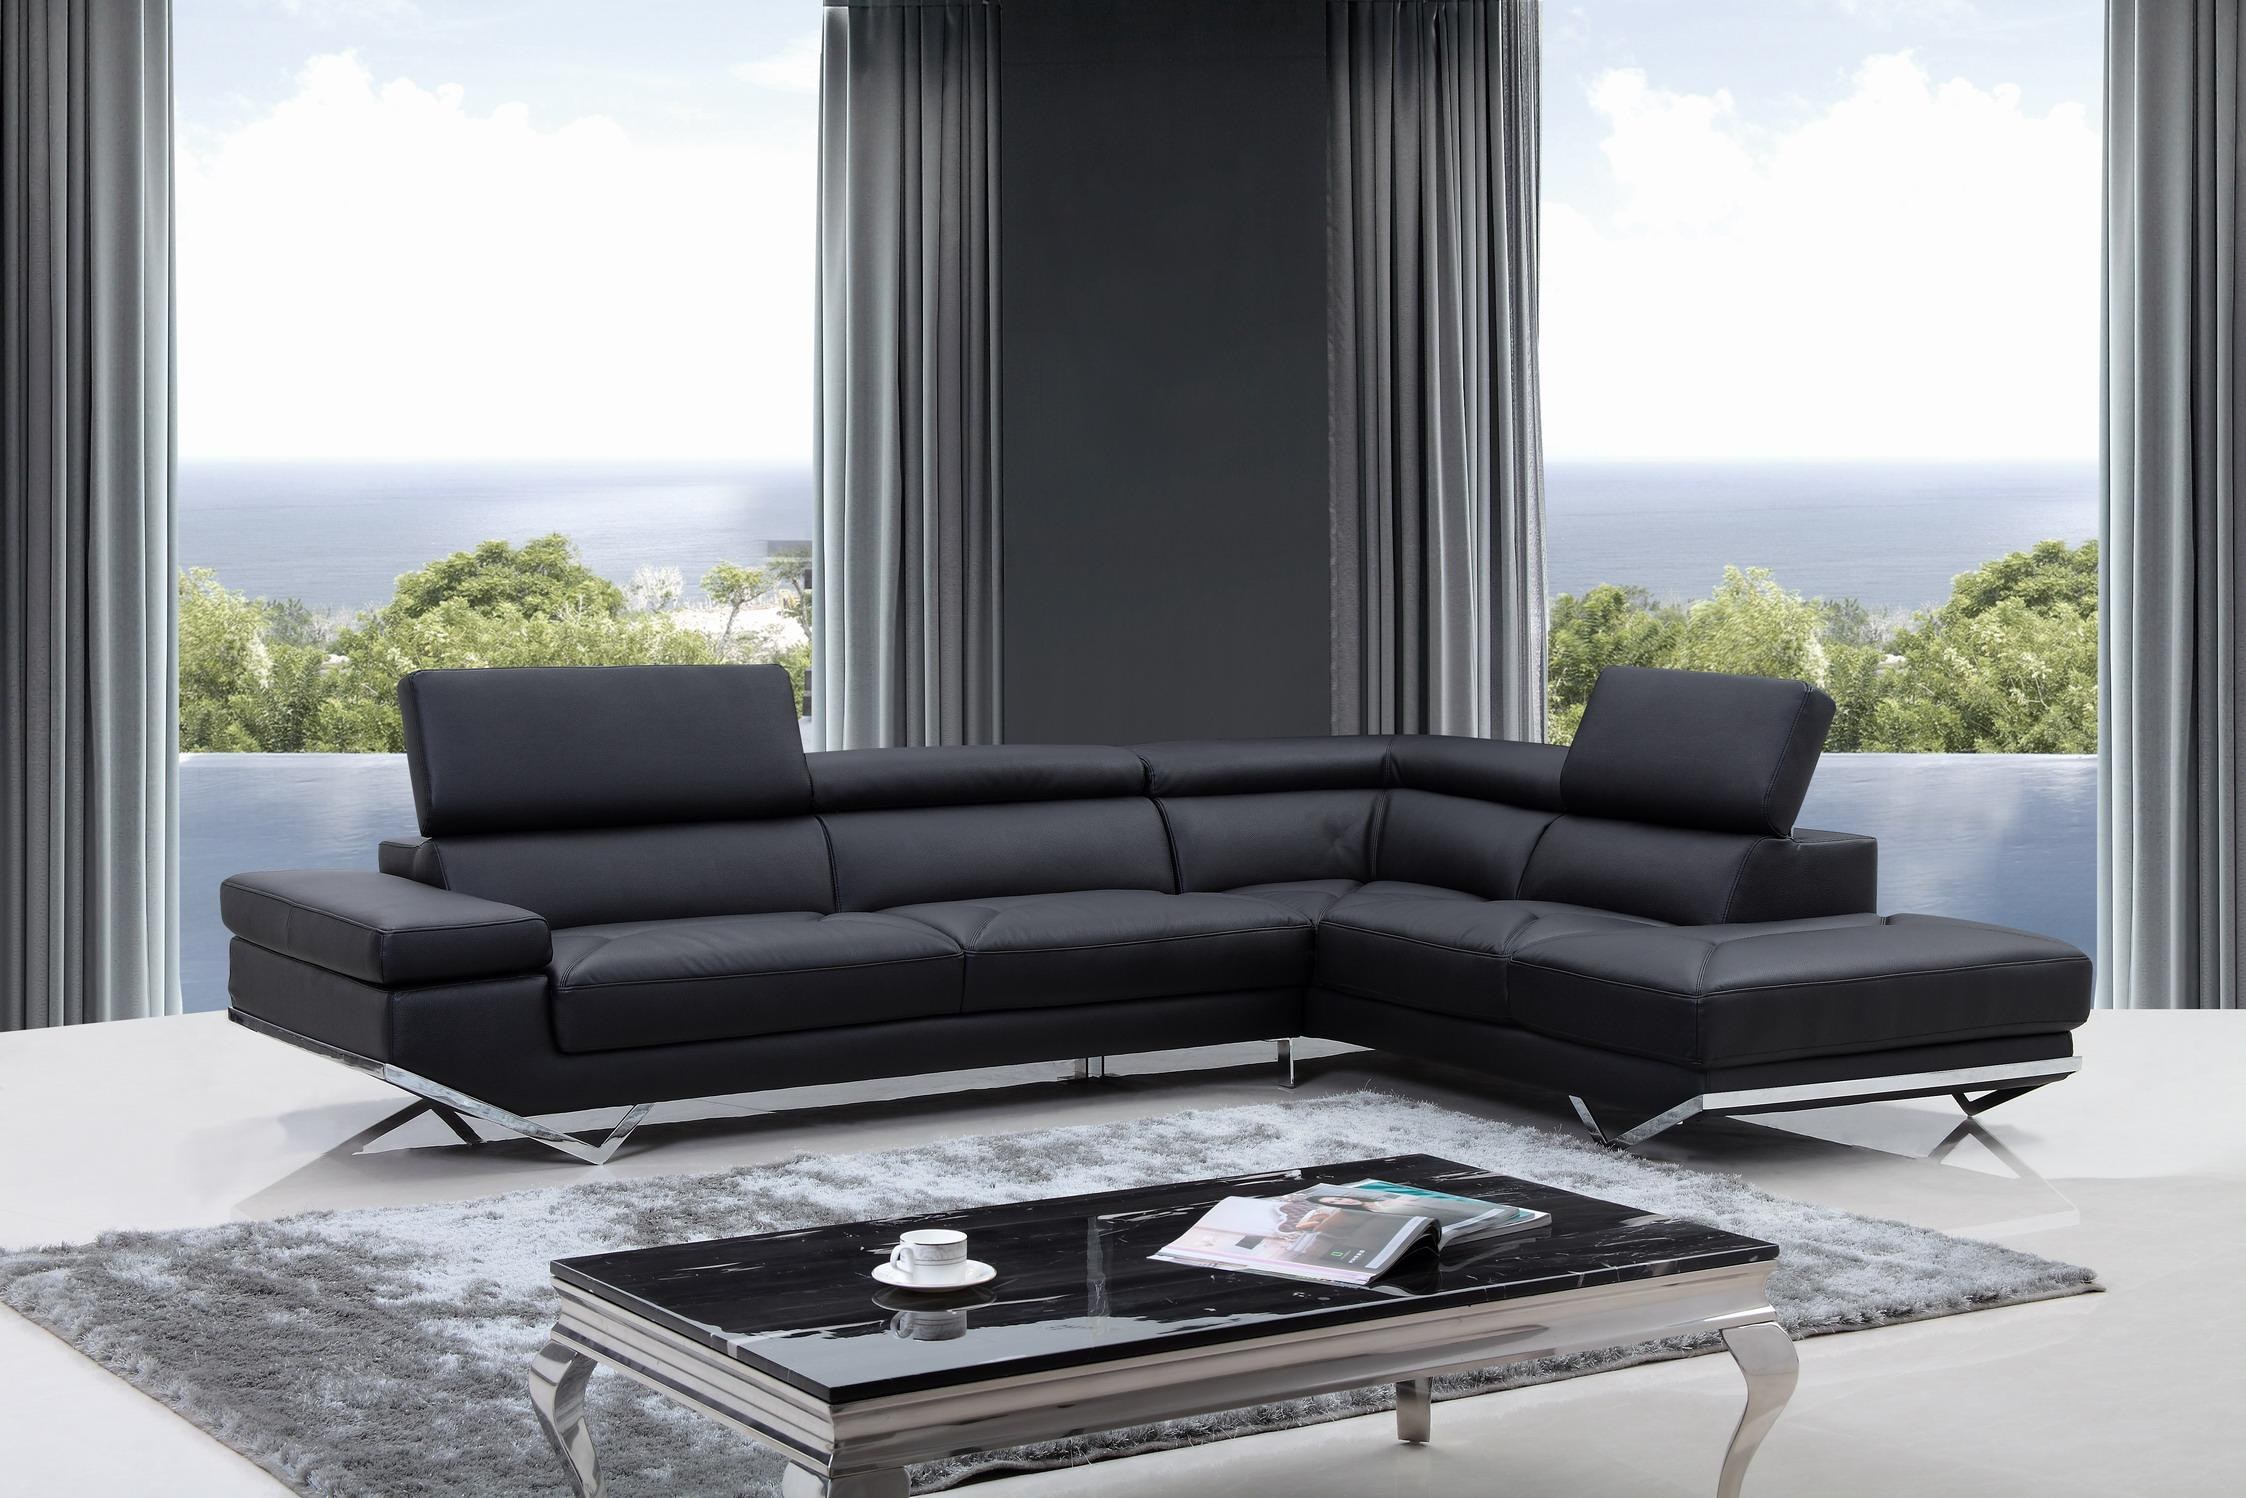 Free Shipping Quebec Modern Black Eco Leather Sectional Sofa For